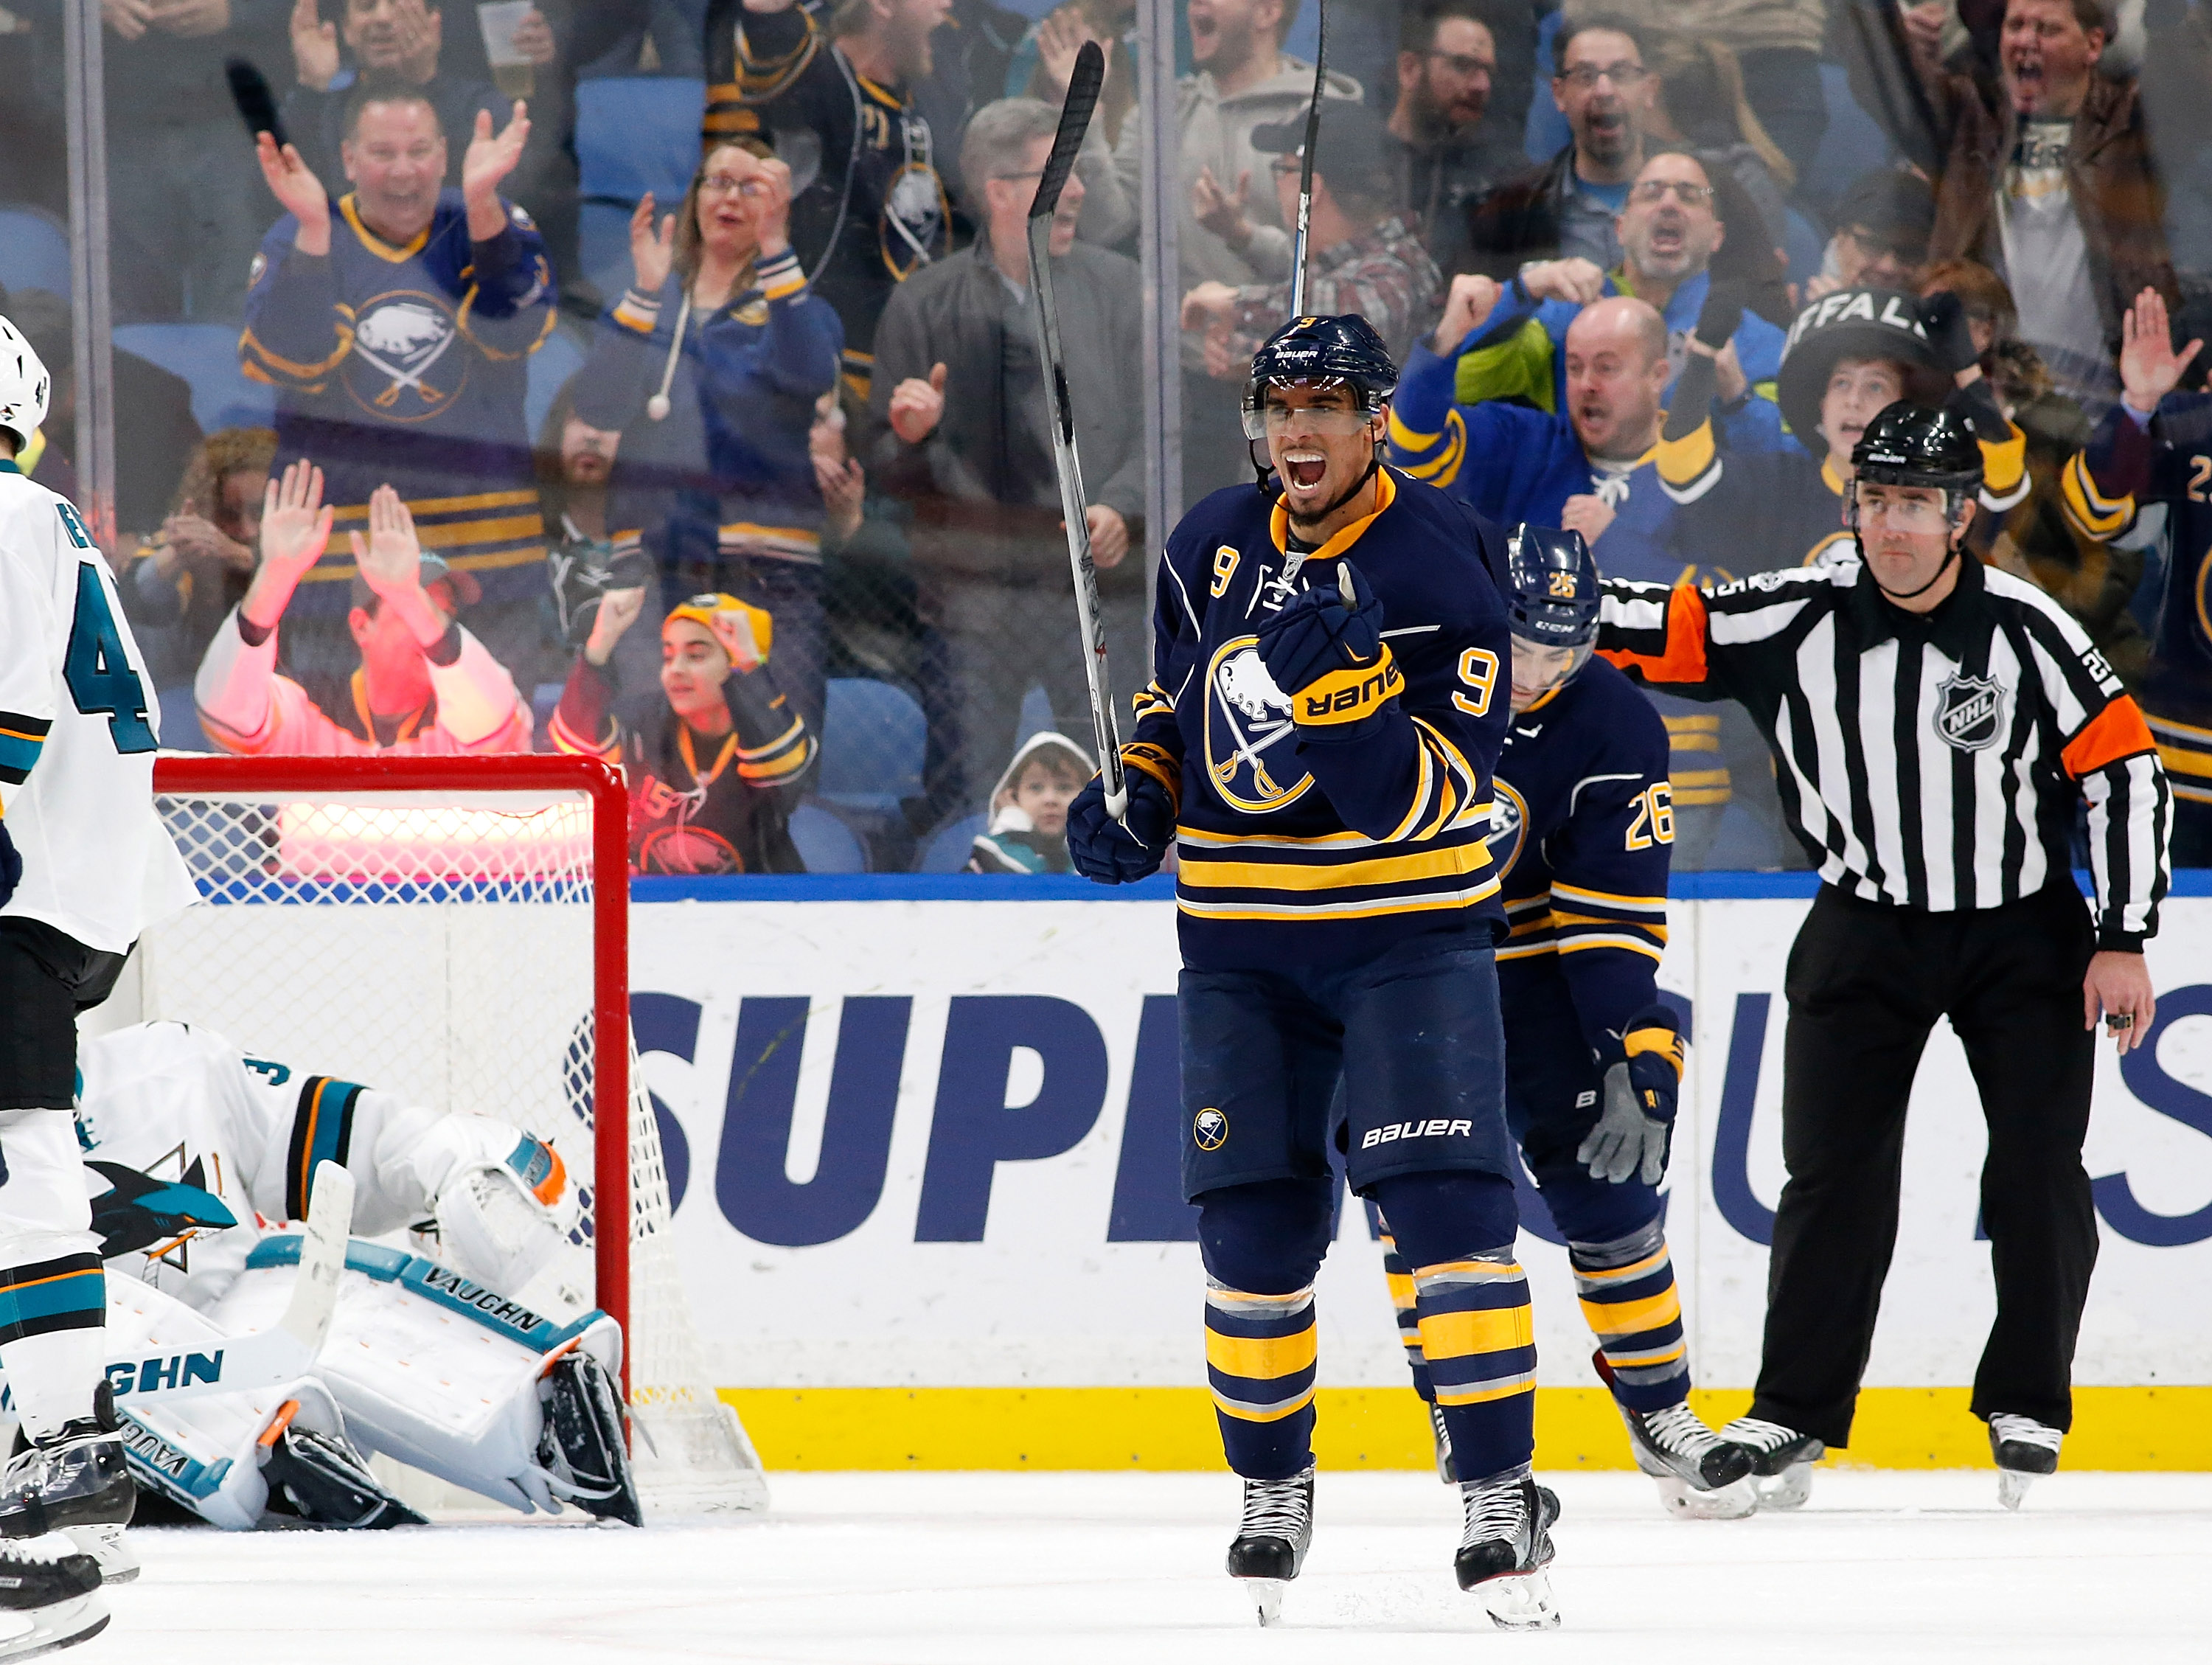 9865193-nhl-san-jose-sharks-at-buffalo-sabres